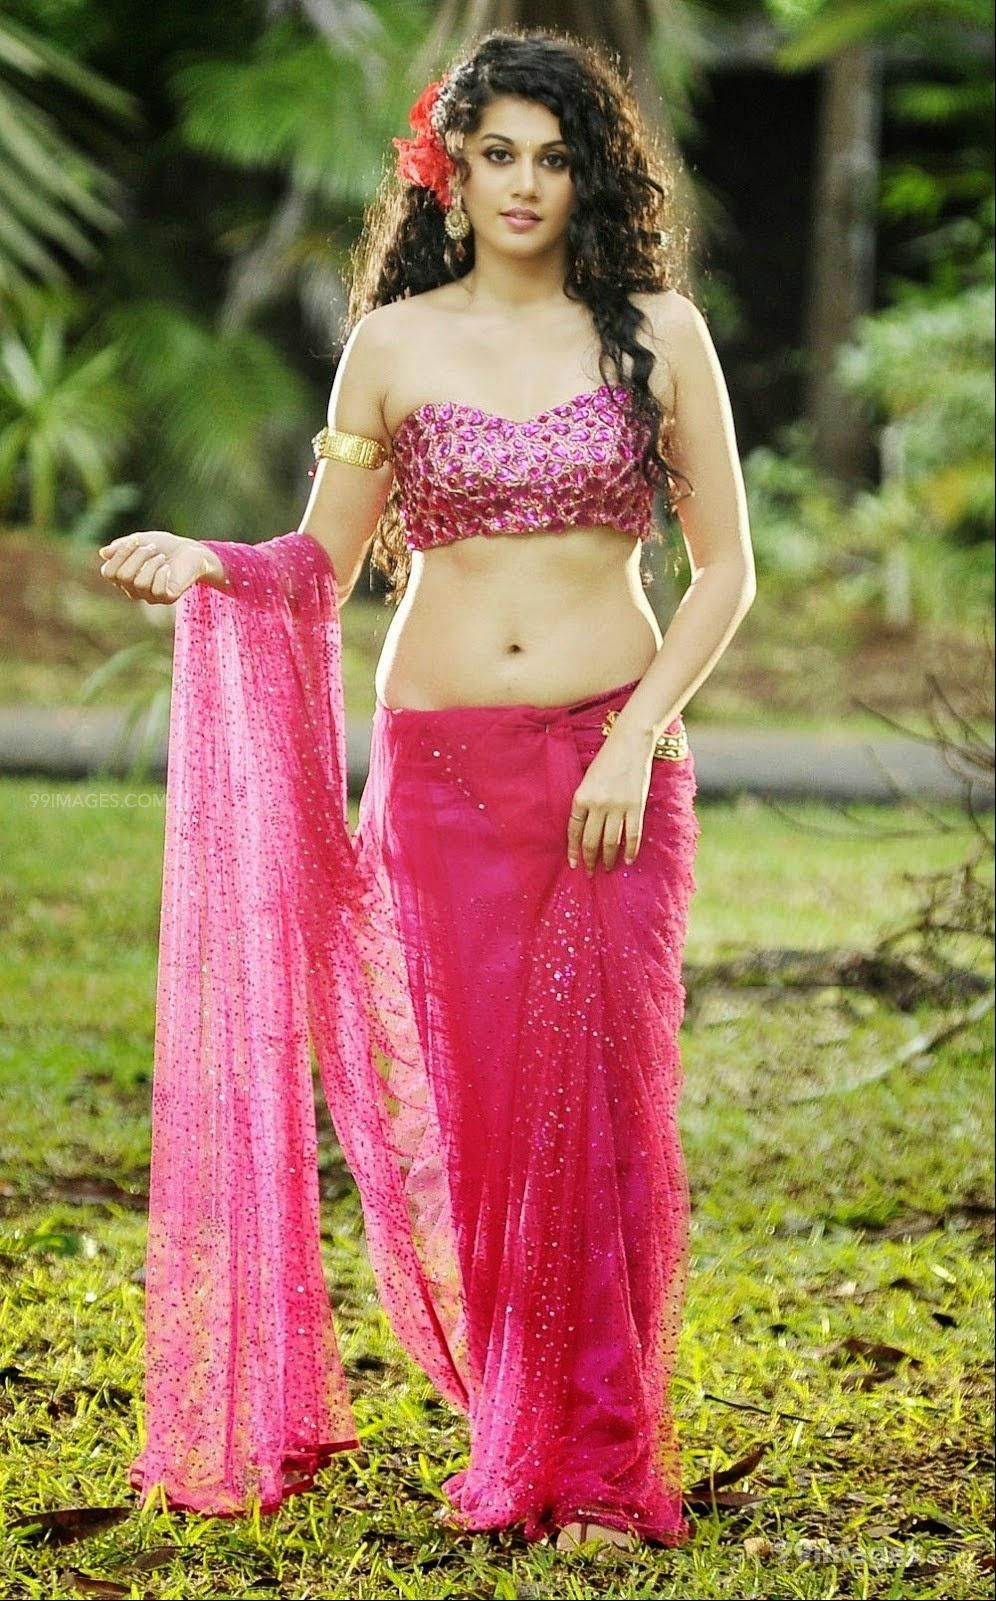 Taapsee Pannus latest beautiful stills in HD Quality (1080p) (325286) - Taapsee Pannu